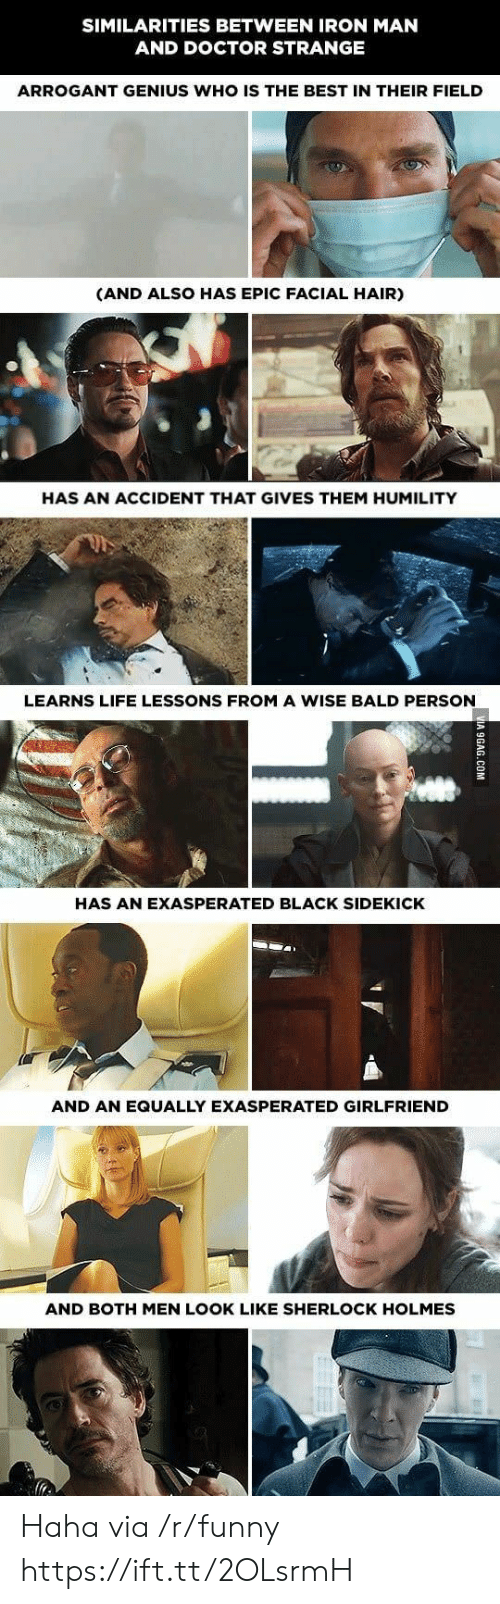 holmes: SIMILARITIES BETWEEN IRON MAN  AND DOCTOR STRANGE  ARROGANT GENIUS WHO IS THE BEST IN THEIR FIELD  (AND ALSO HAS EPIC FACIAL HAIR)  HAS AN ACCIDENT THAT GIVES THEM HUMILITY  LEARNS LIFE LESSONS FROM A WISE BALD PERSON  HAS AN EXASPERATED BLACK SIDEKICK  AND AN EQUALLY EXASPERATED GIRLFRIEND  AND BOTH MEN LOOK LIKE SHERLOCK HOLMES Haha via /r/funny https://ift.tt/2OLsrmH